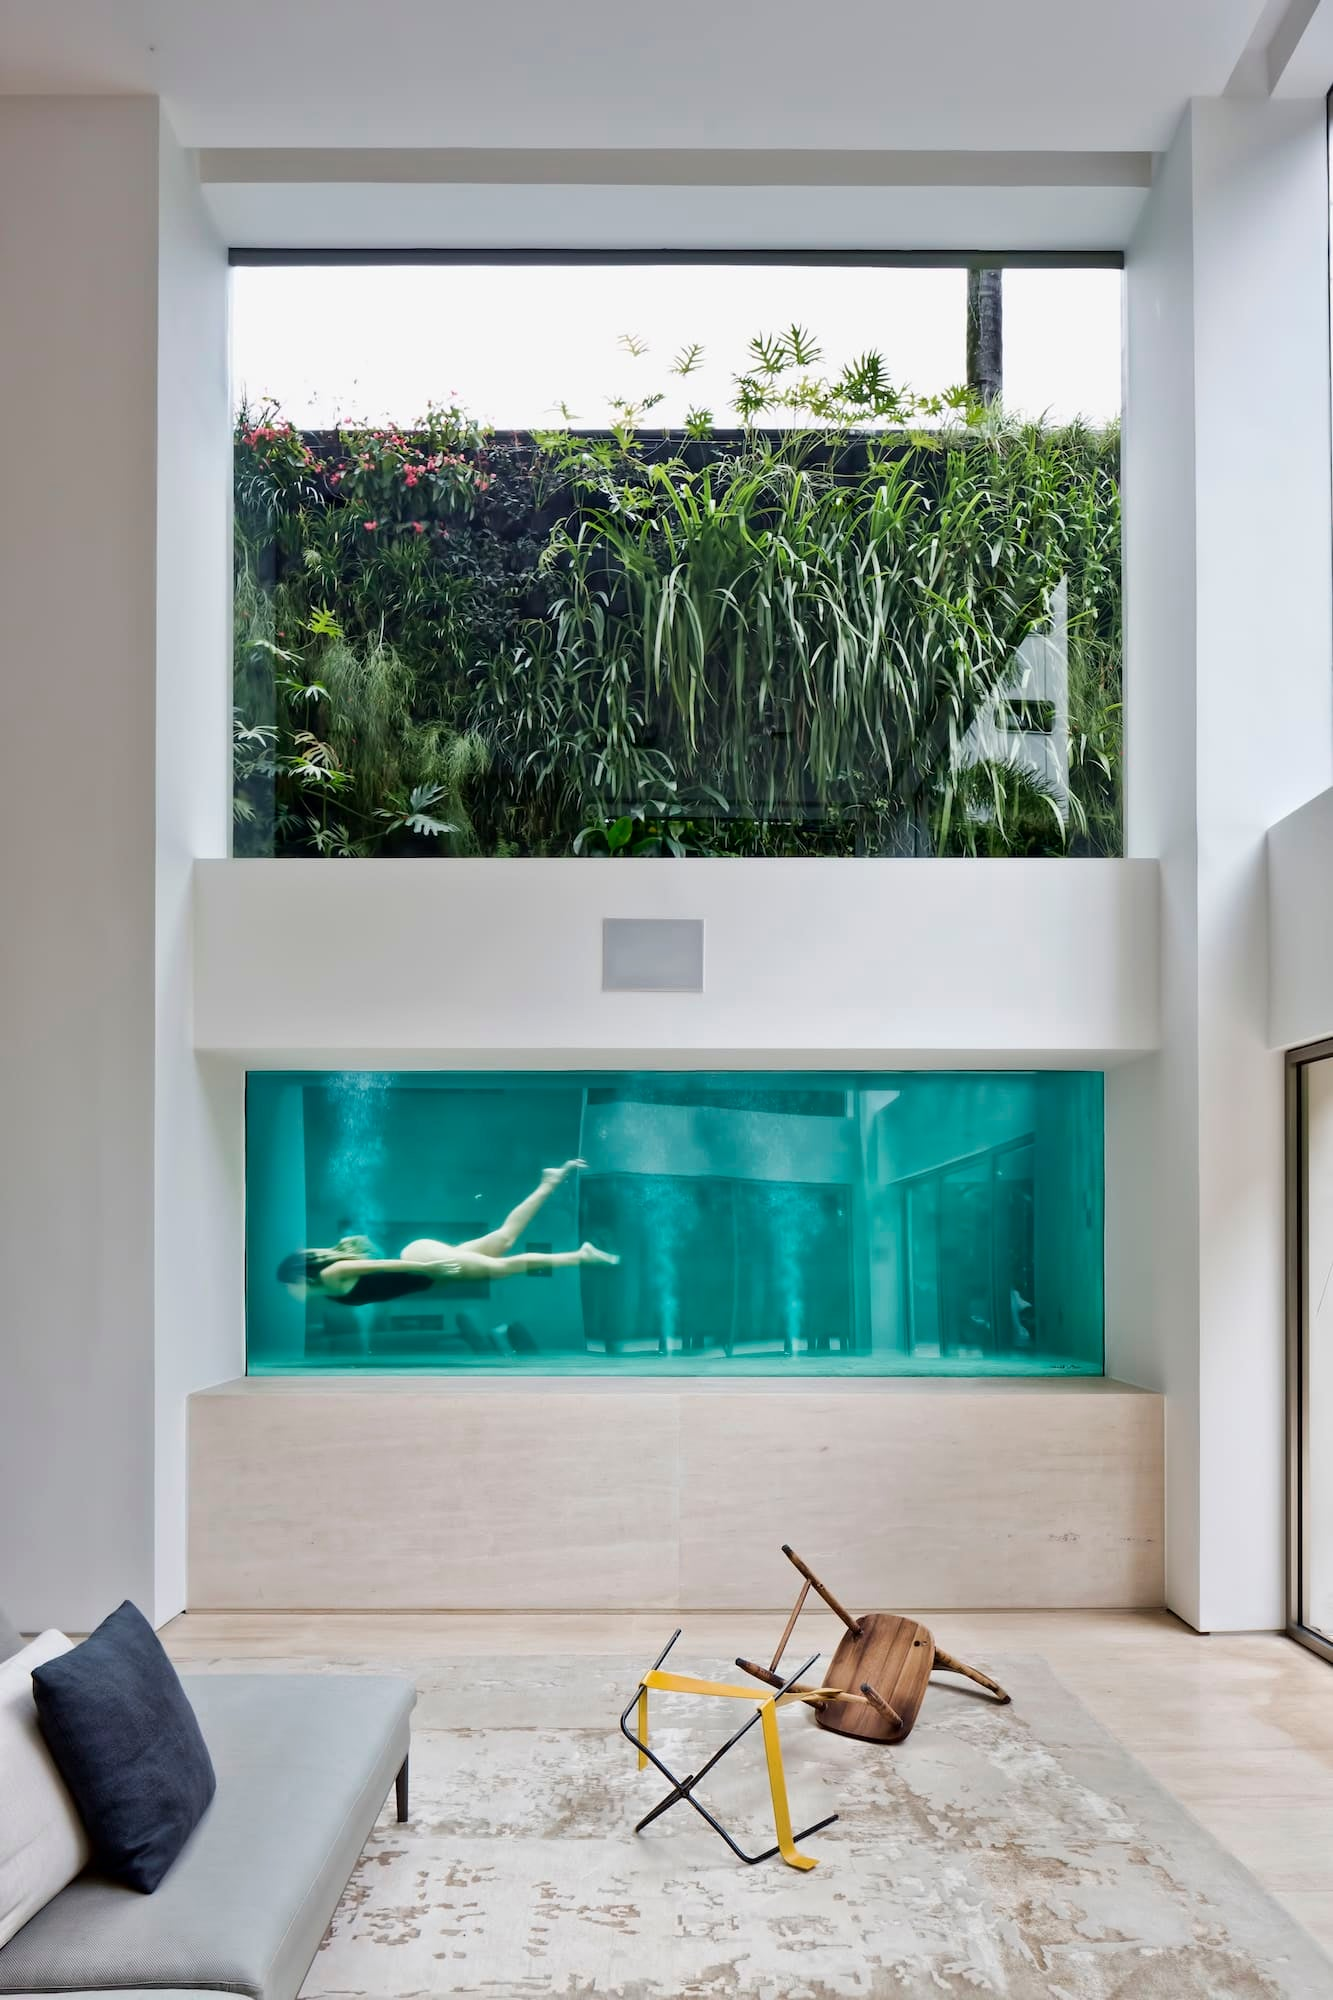 I Decided To Place The Pool Front And Center In Living Room So That Addition Enjoying It For Leisure Would Create An Element Of Tension